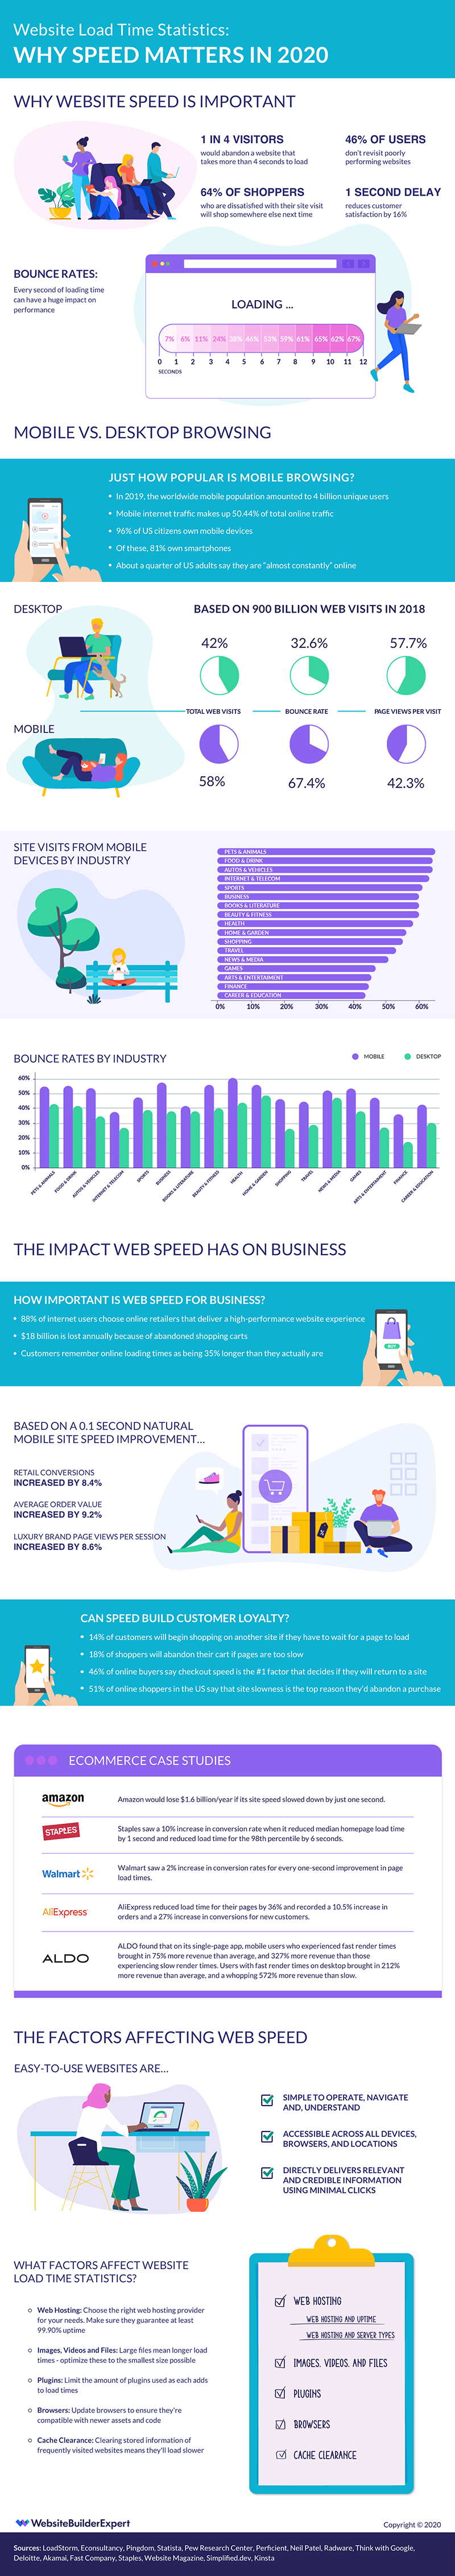 Website load times infographic